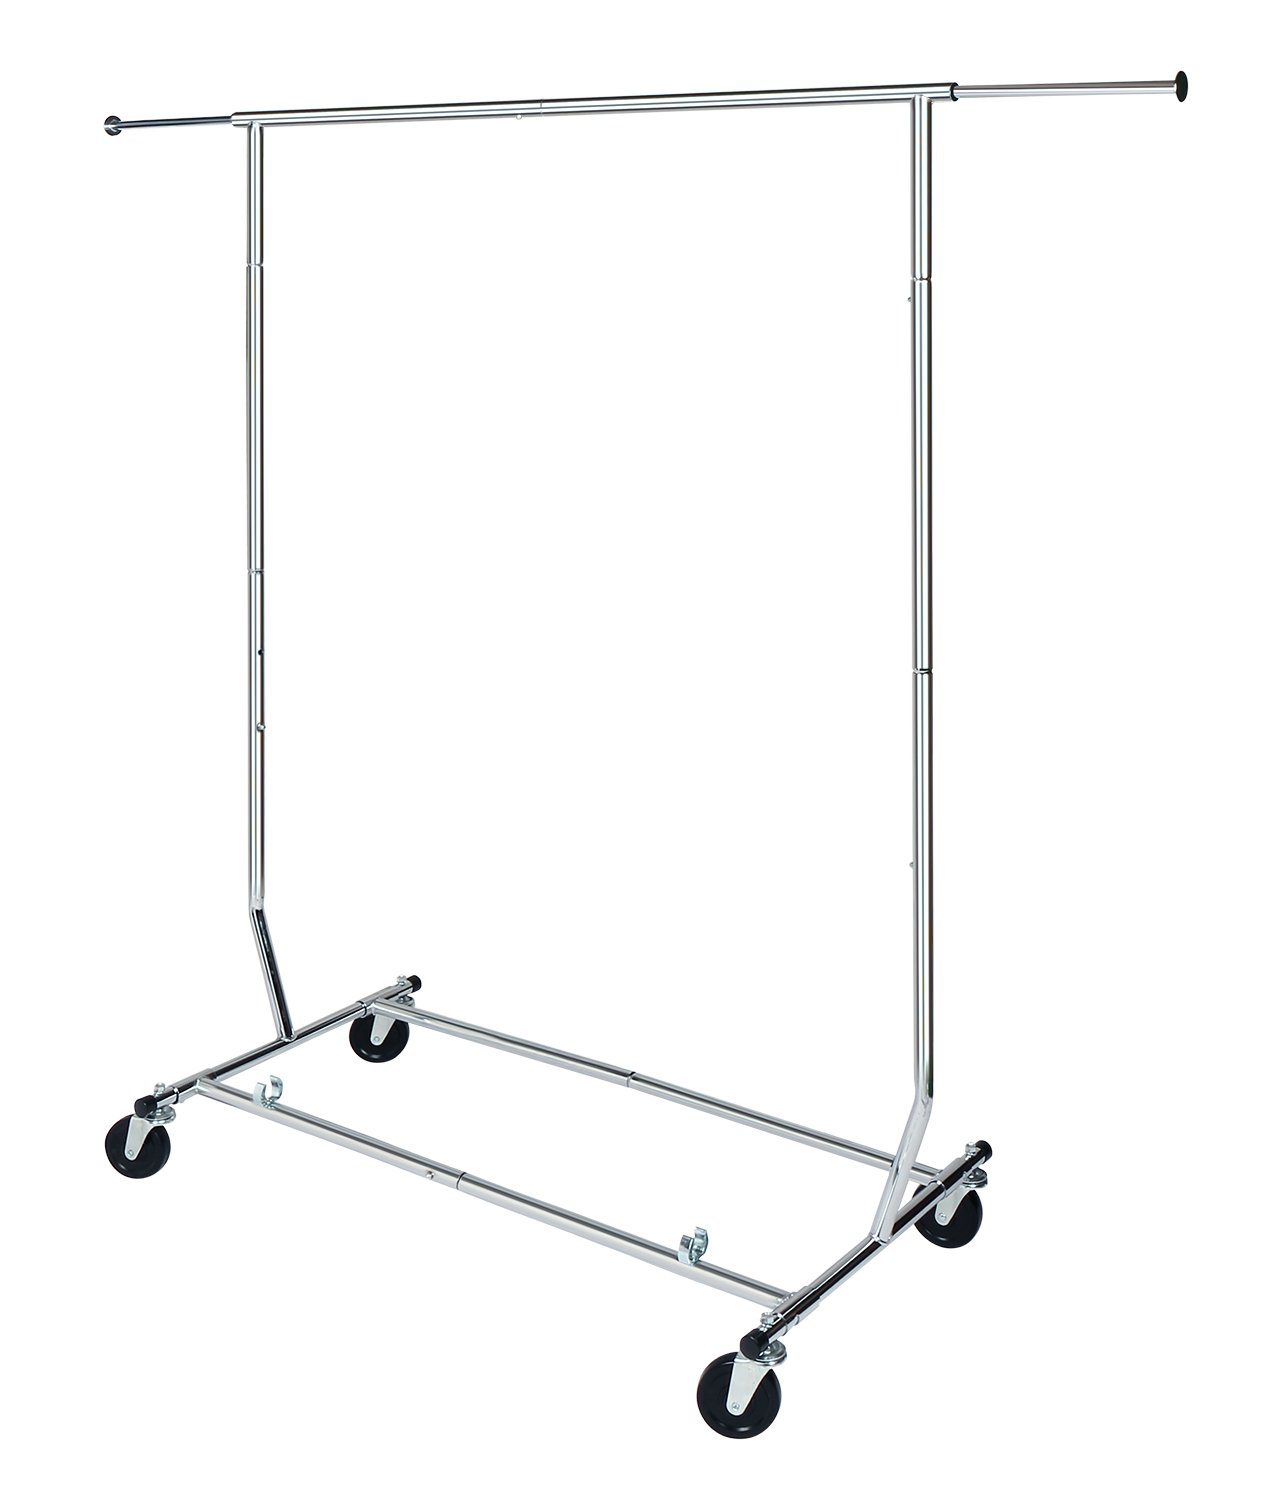 Amazon com need a rack collapsible clothing rack commercial grade home kitchen